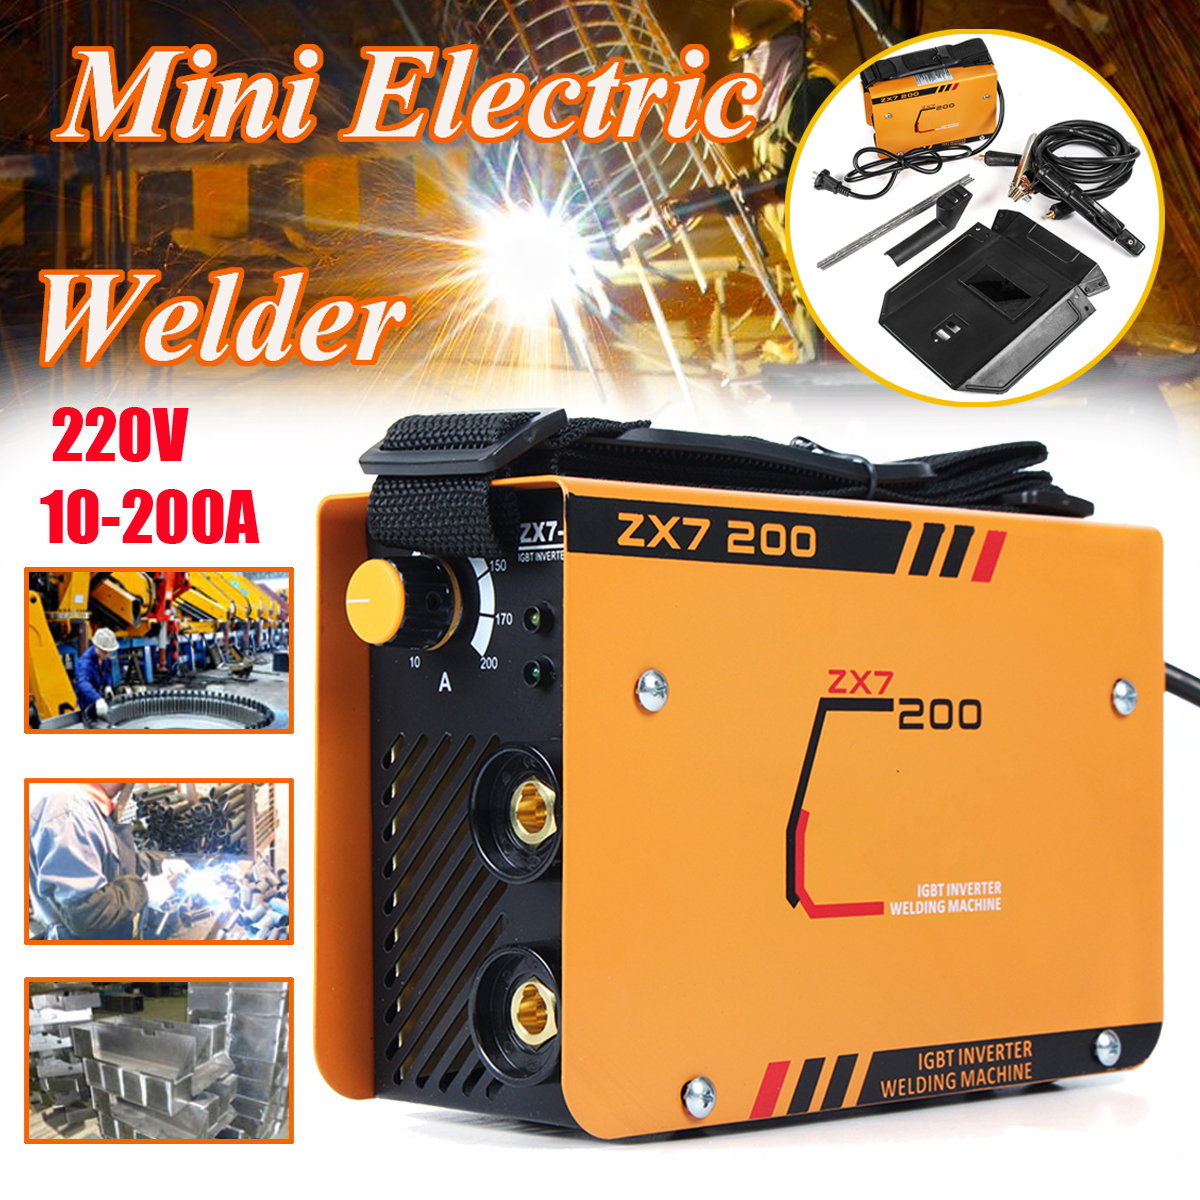 ZX7-200 220V 10-200A Handheld Mini Electric Welding Inverter Welding Machine Tool